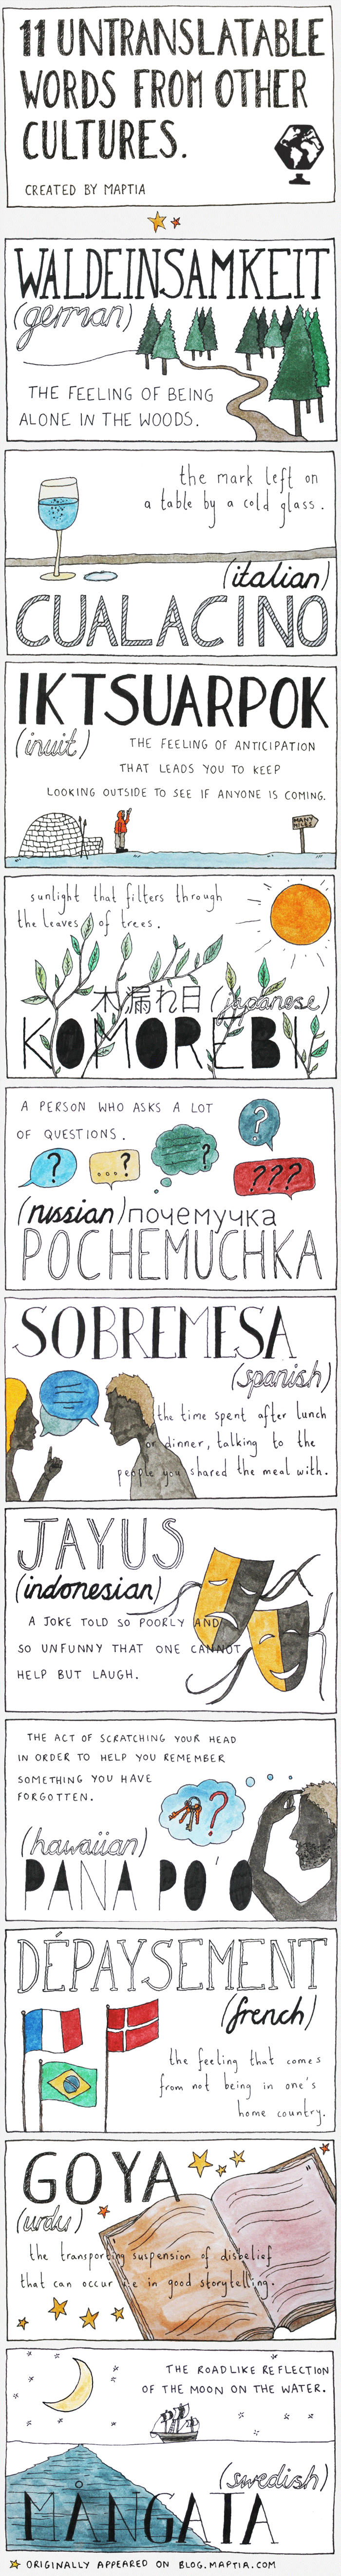 11-untranslatable-words-from-other-cultures_52152bbe65e85